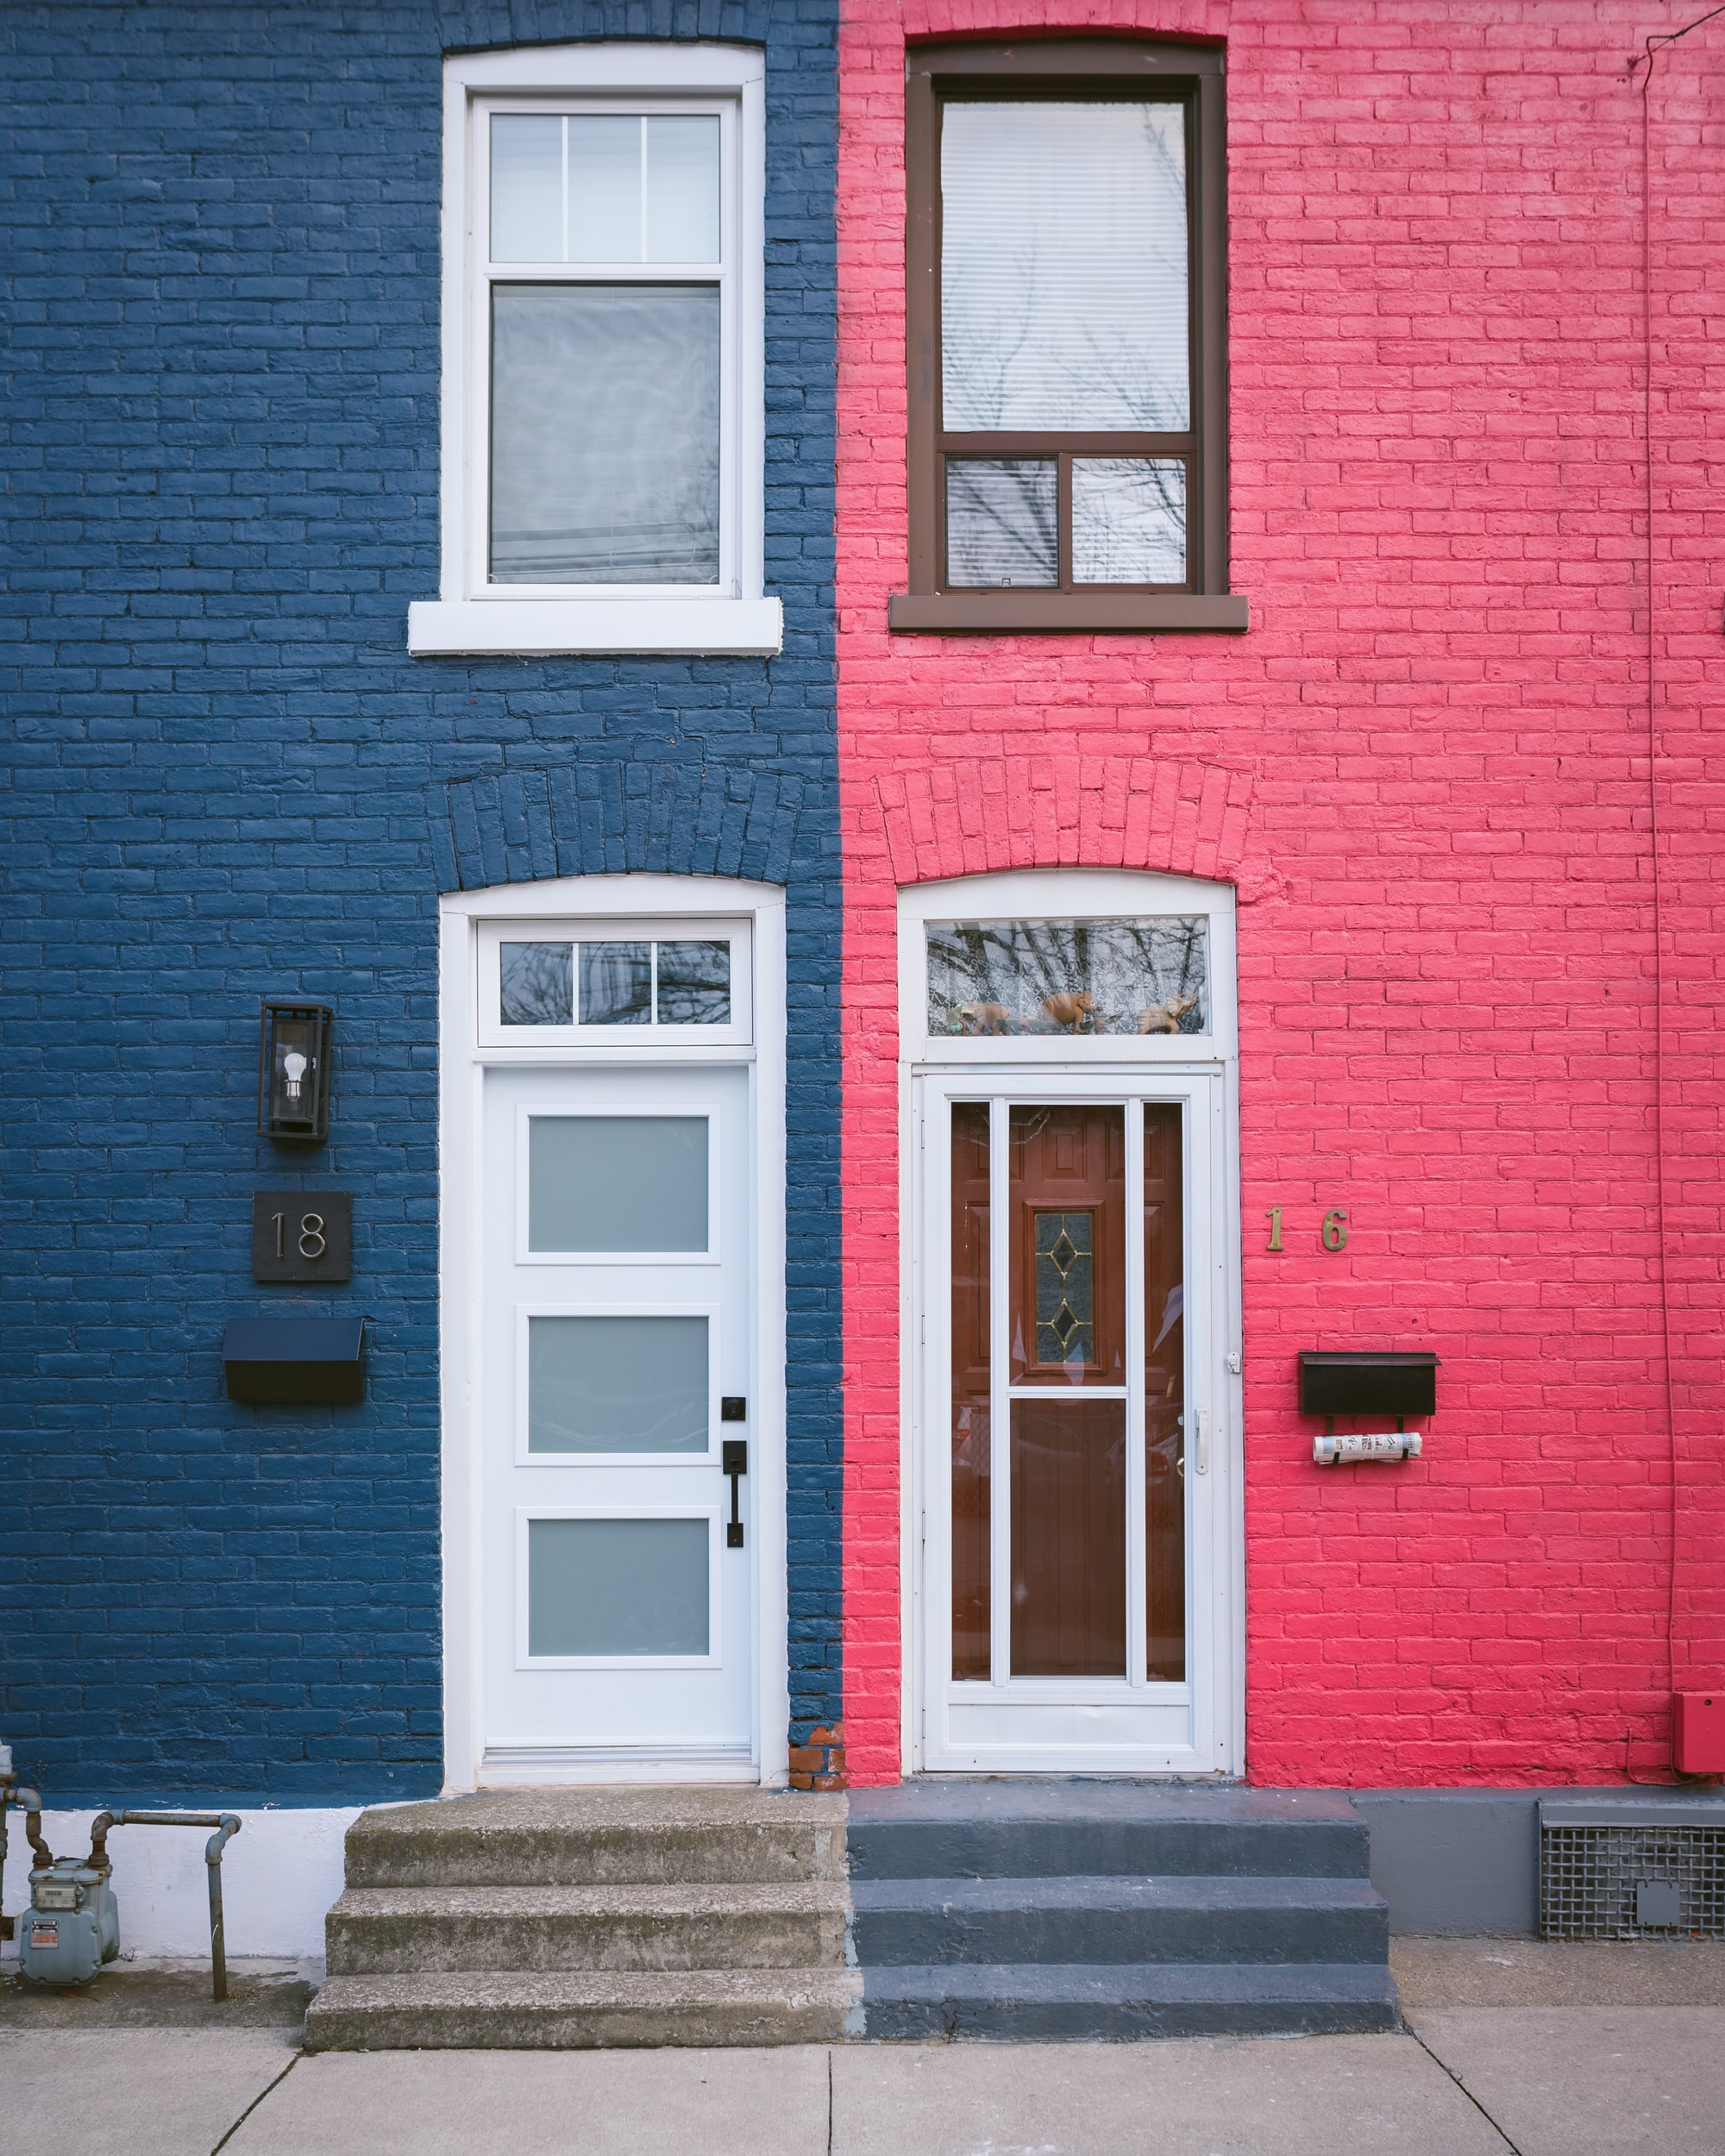 Myths about Homeownership